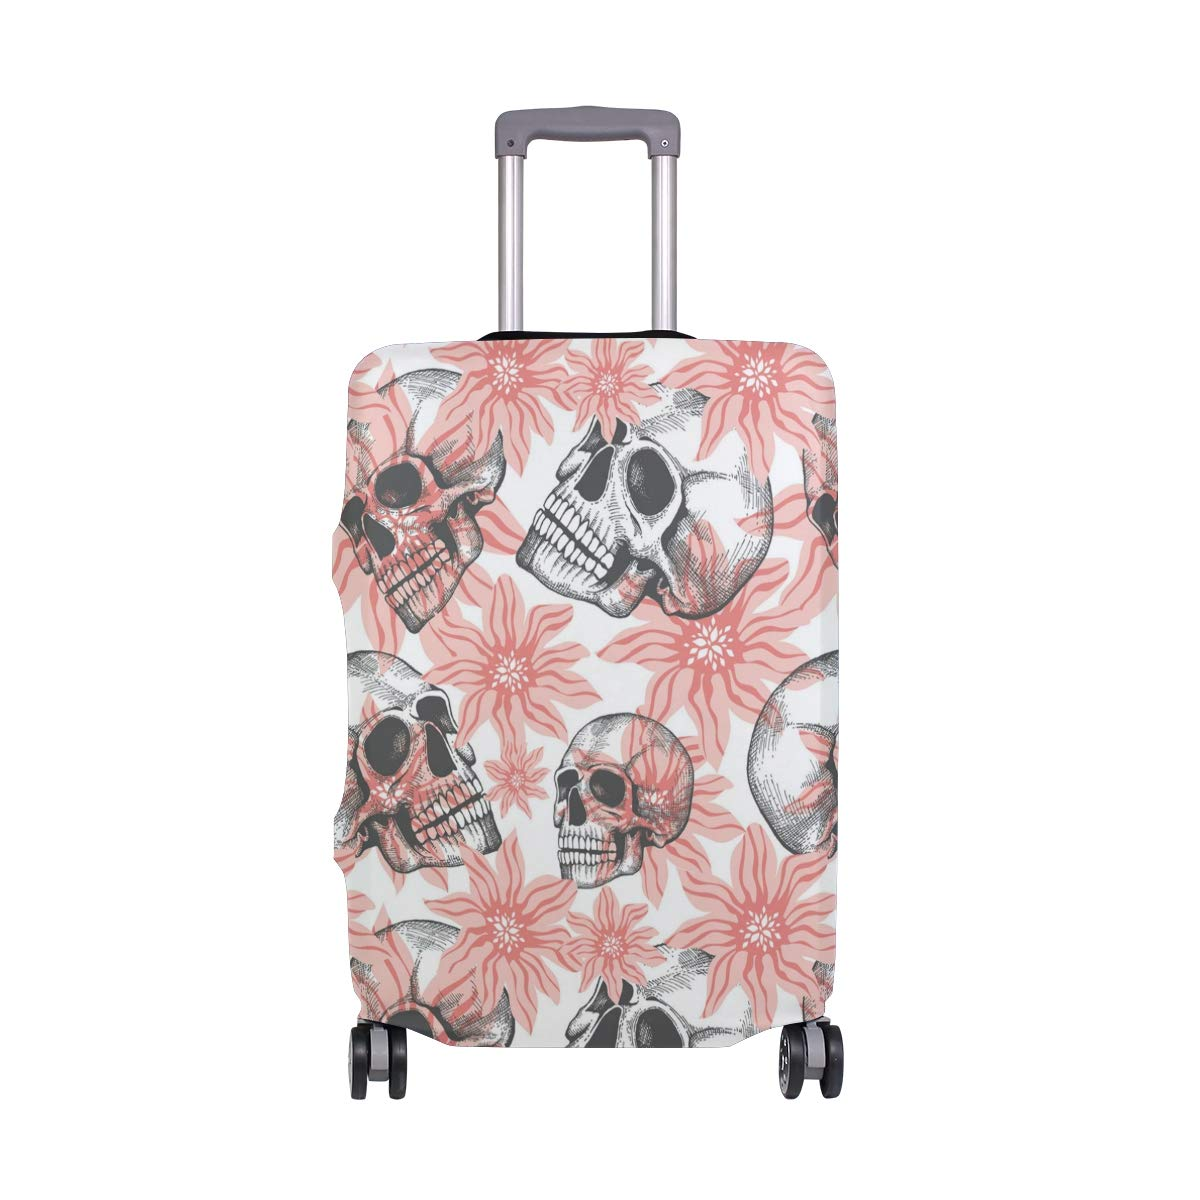 Humorous Pink Rose Skull Traveler Lightweight Rotating Luggage Protector Case Can Carry With You Can Expand Travel Bag Trolley Rolling Luggage Protector Case